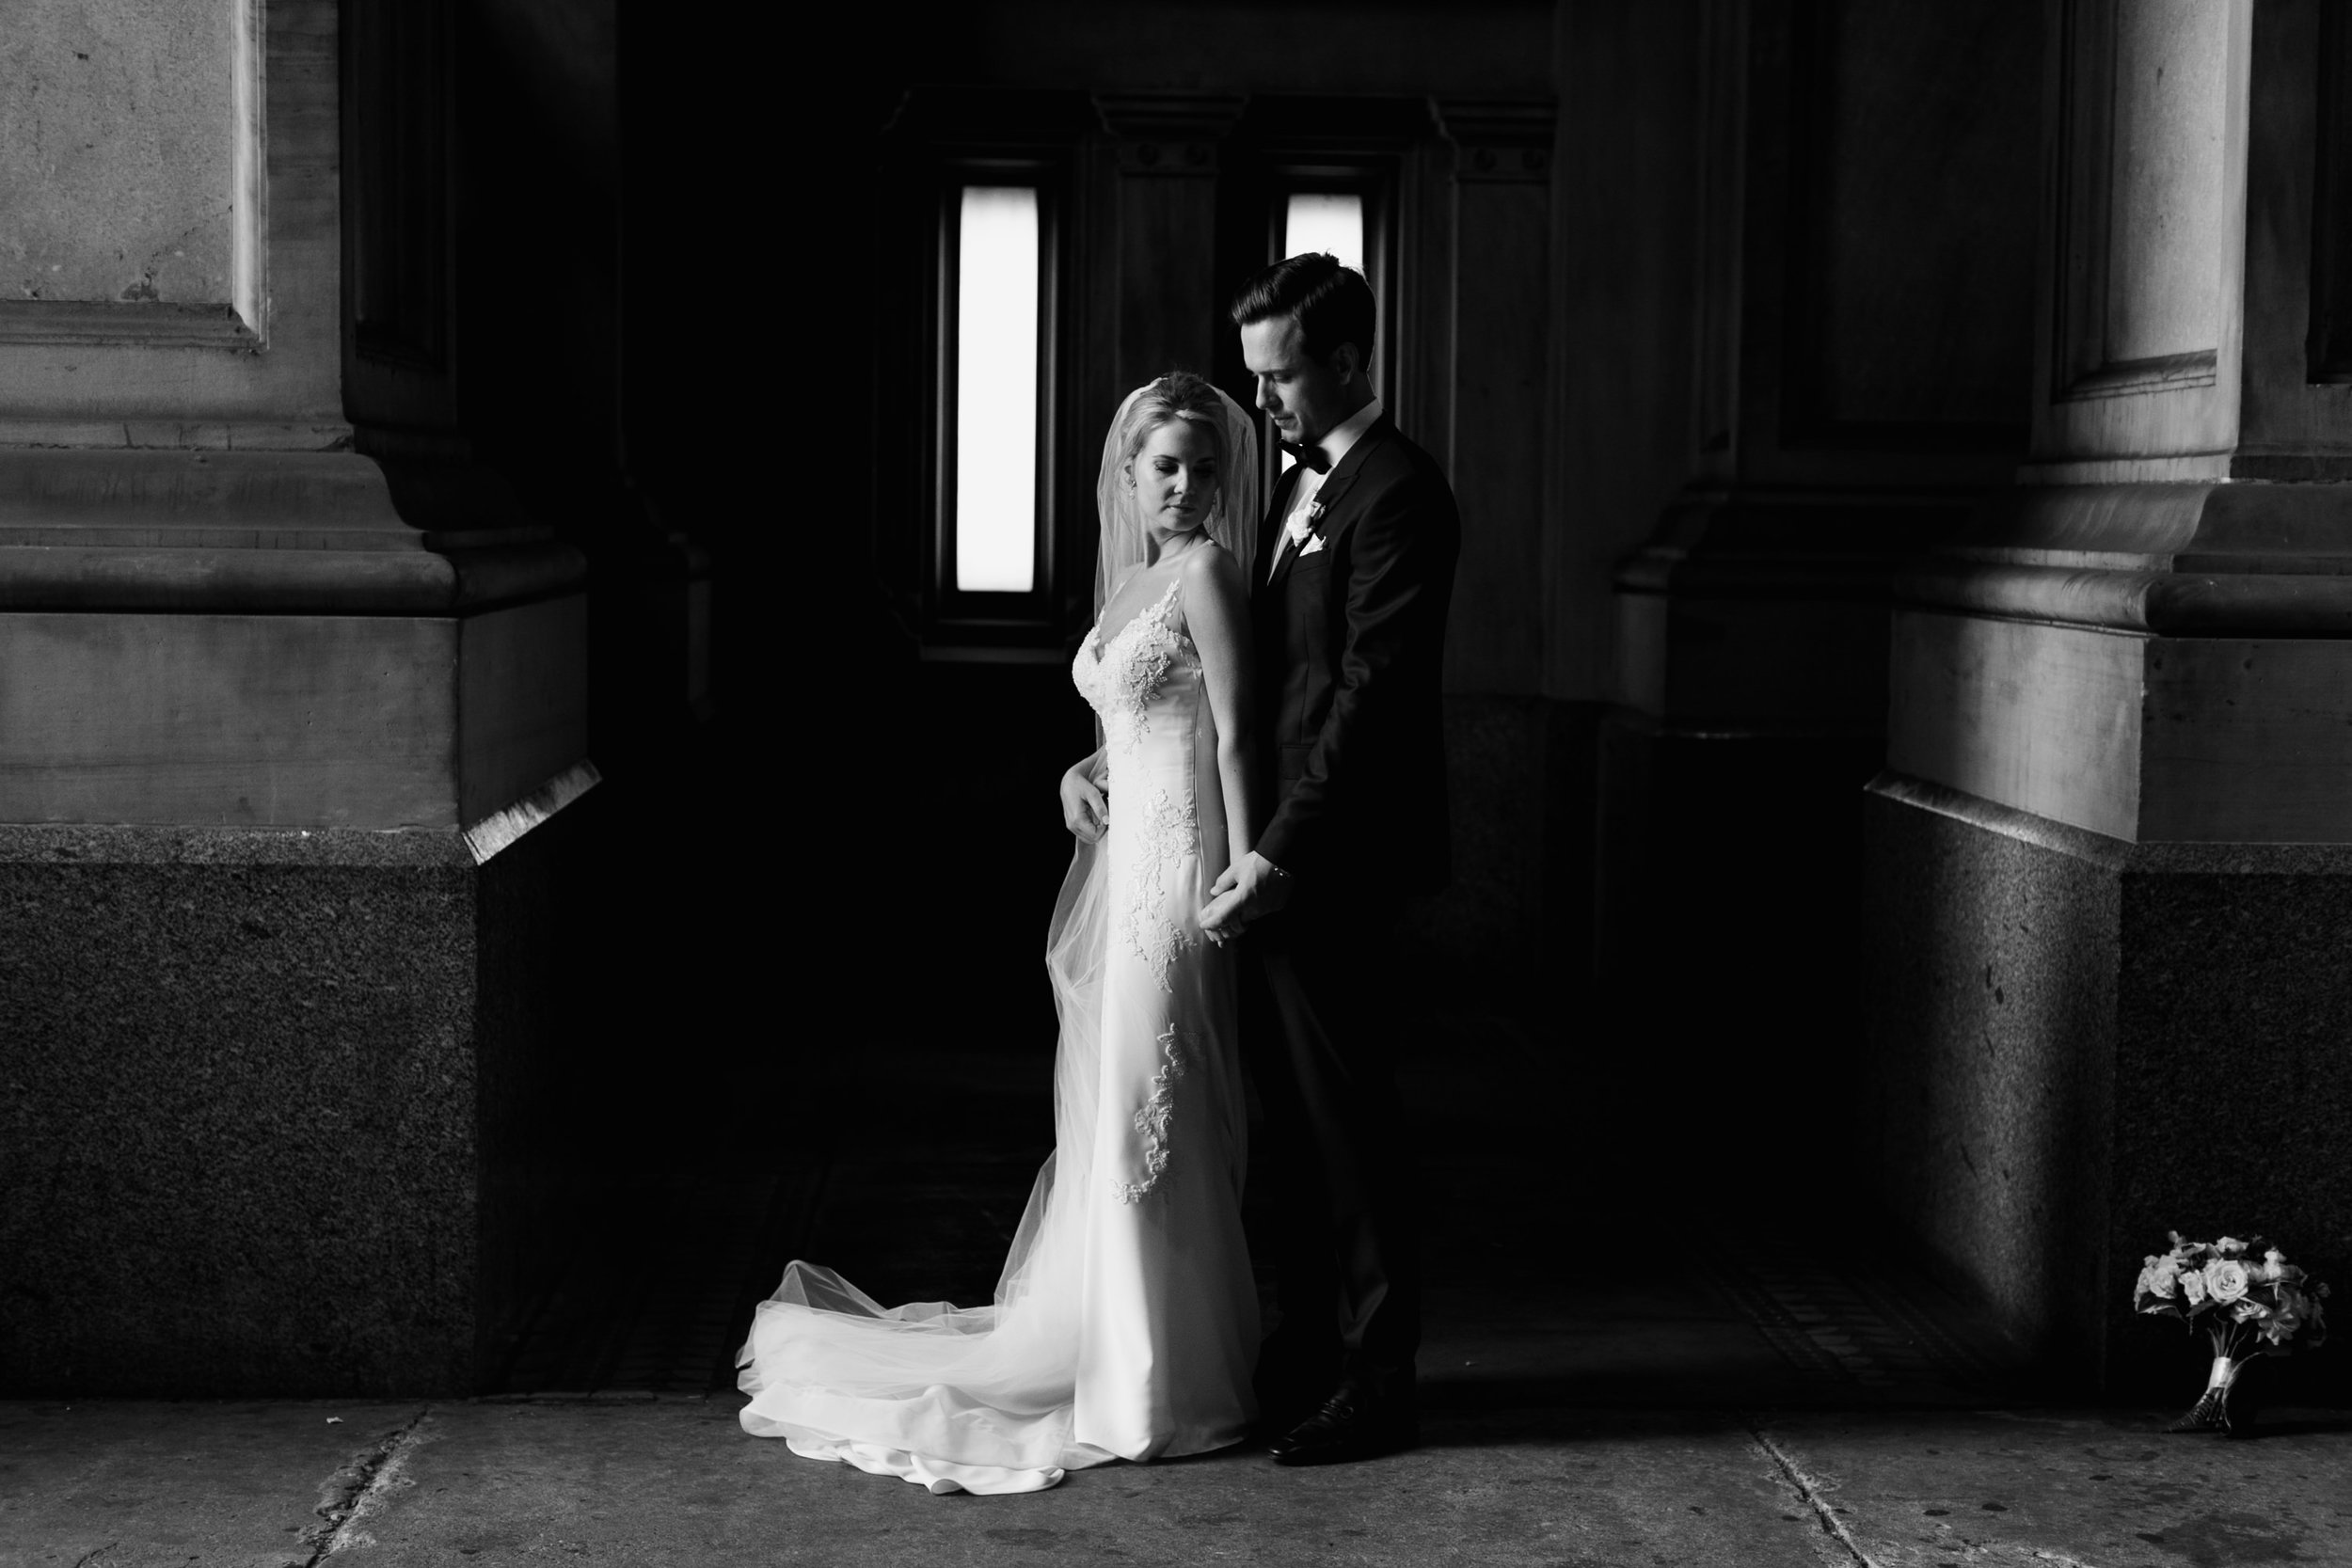 photography-wedding-weddings-natural-candid-union league-philadelphia-black tie-city hall-broad street-editorial-modern-fine-art-03.JPG